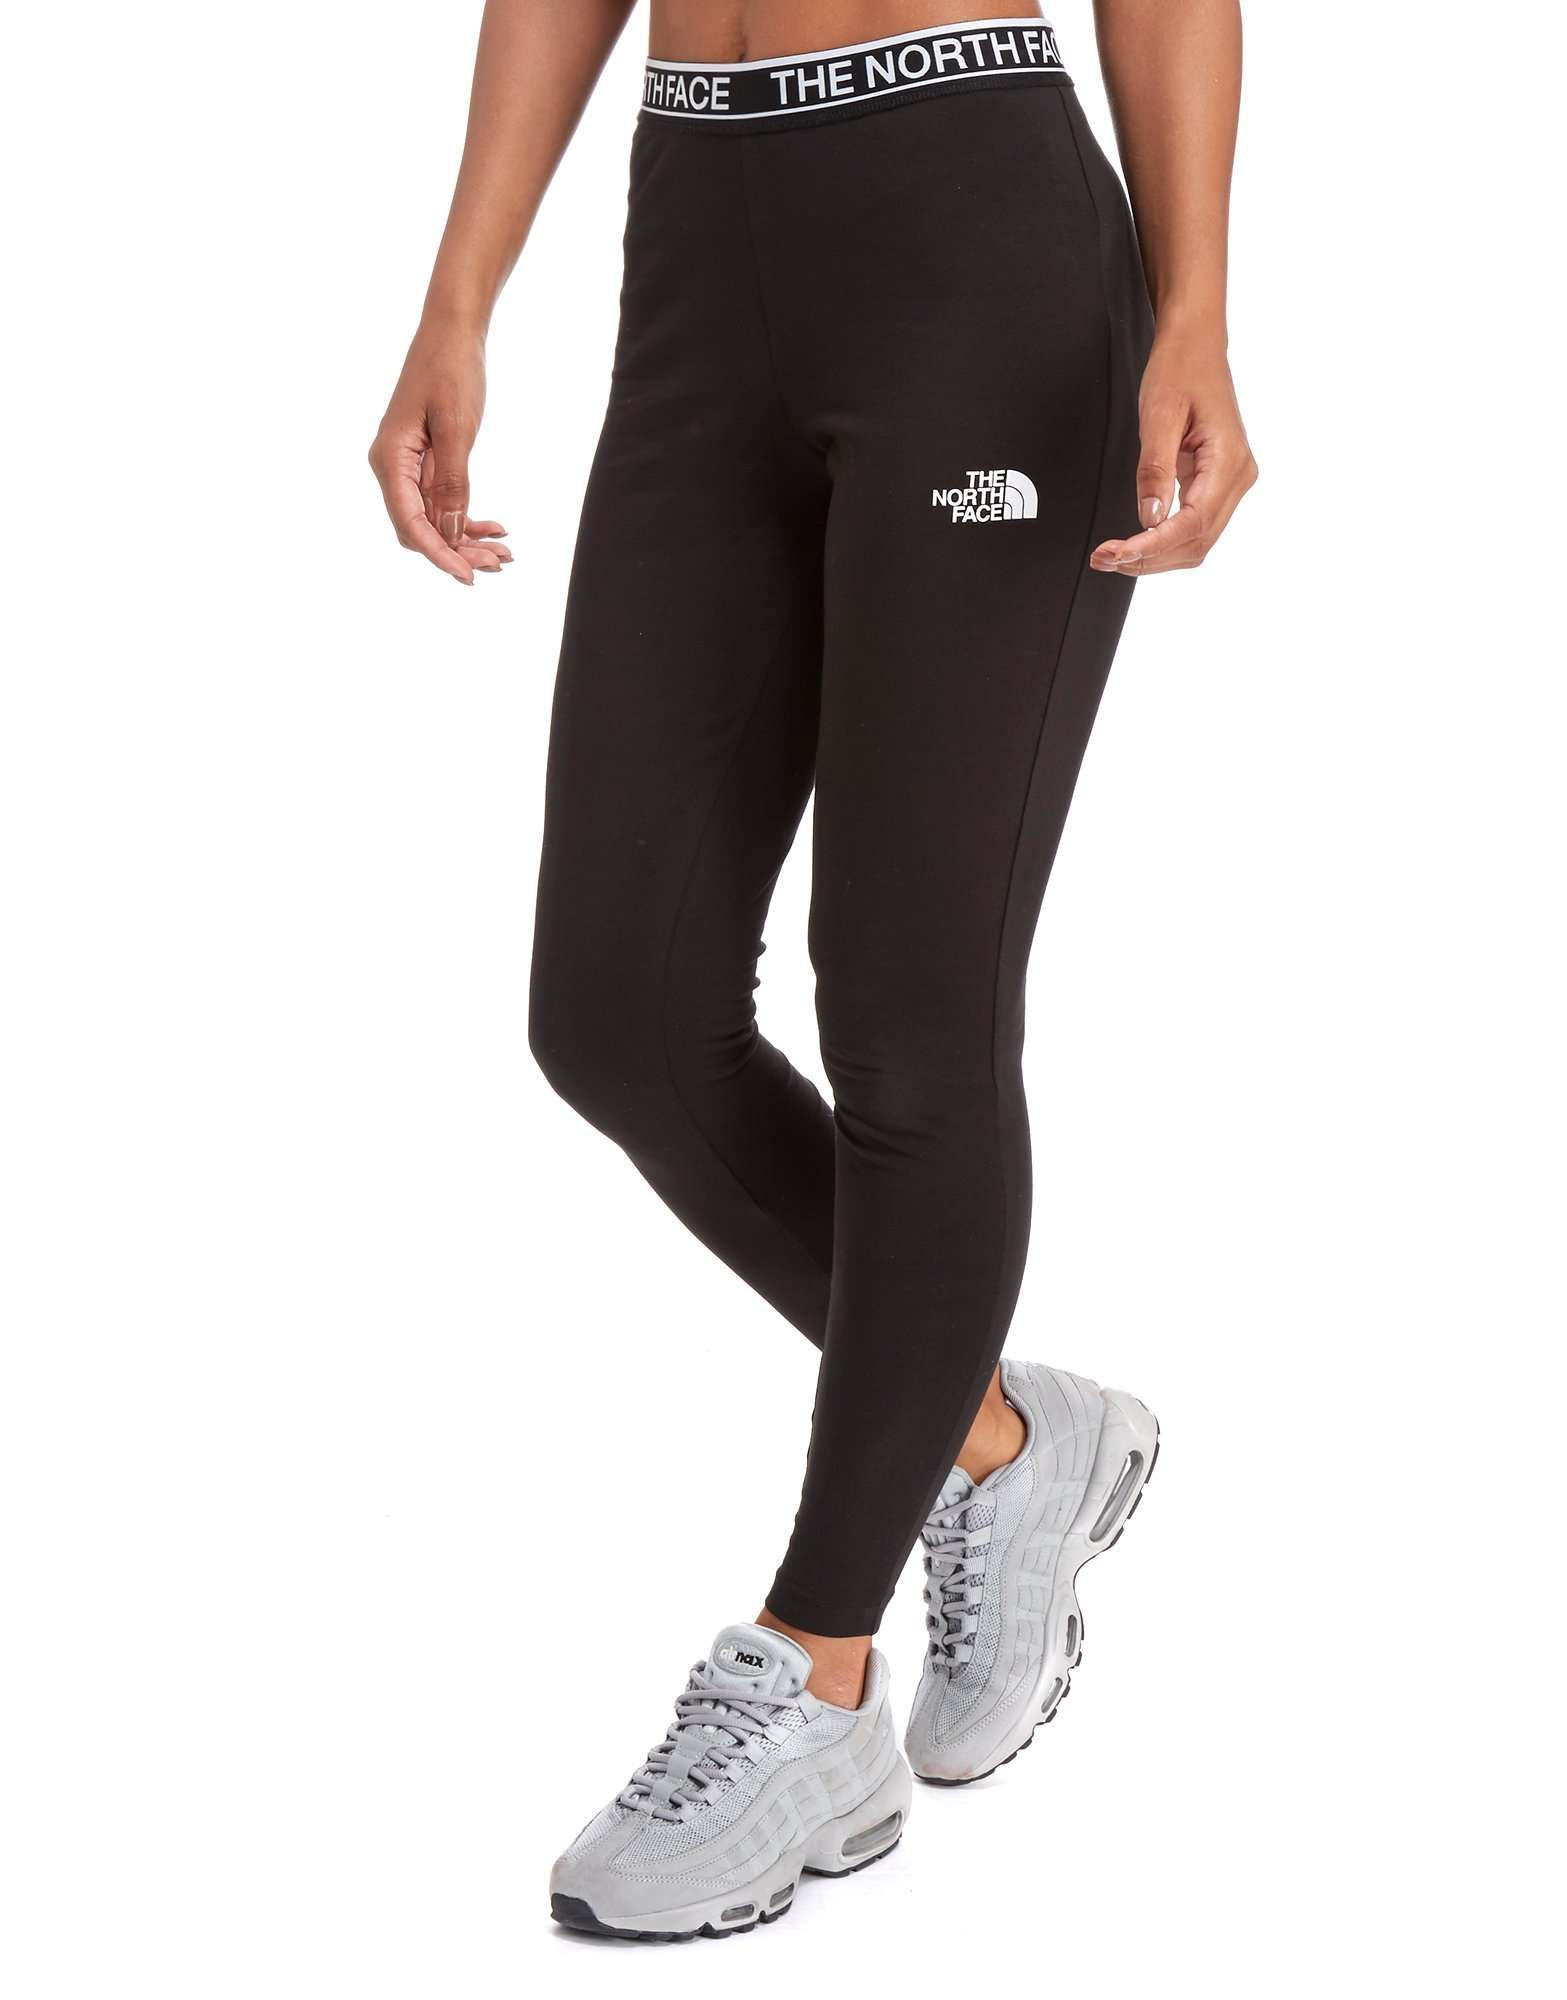 beautiful style where can i buy soft and light The North Face Leggings | Clothes | The north face, Jd ...